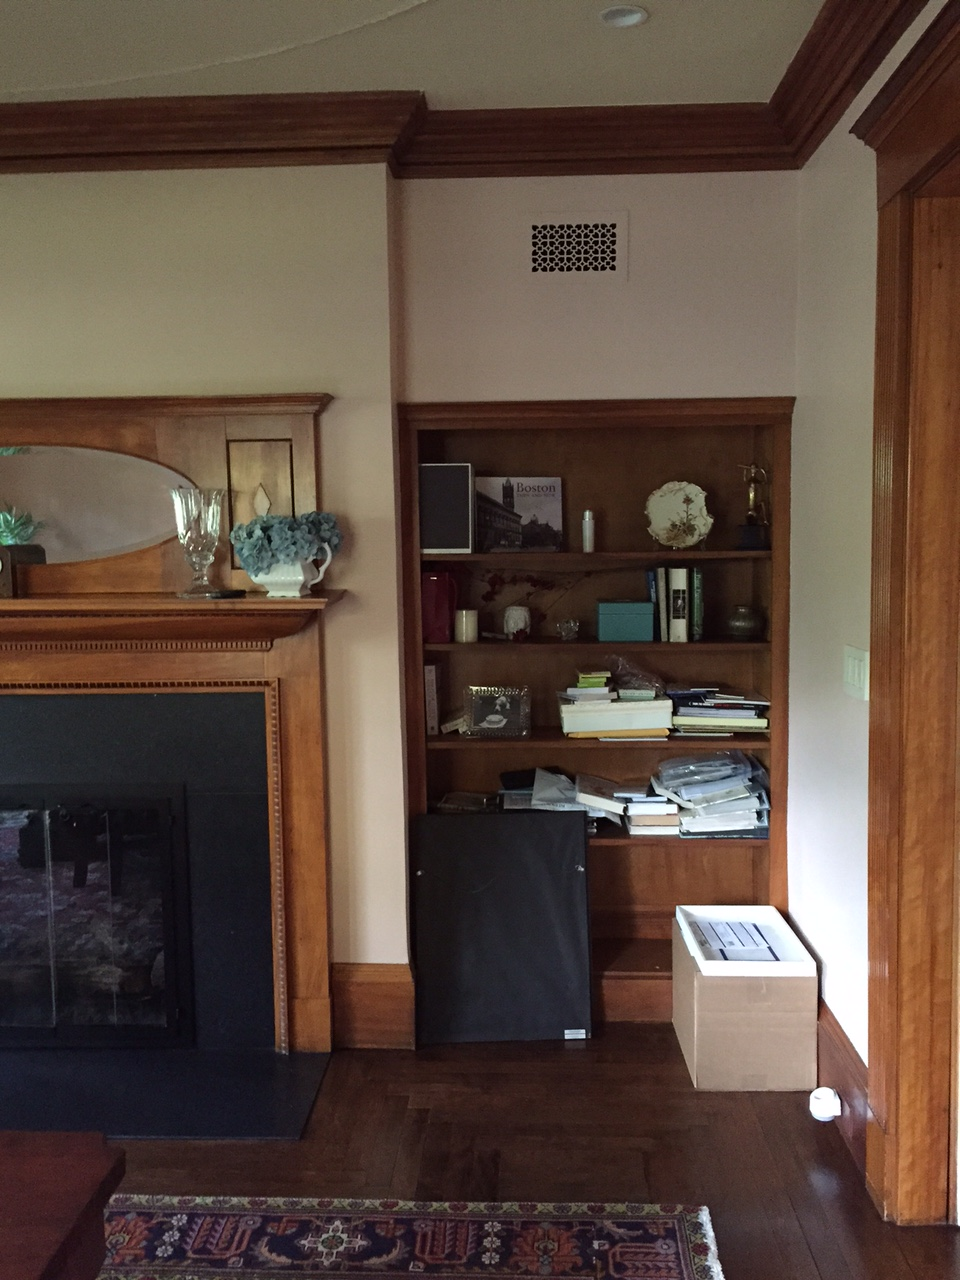 One Room Challenge Fall 2015 - BEFORE | Kelly Rogers Interiors | Interiors for Families